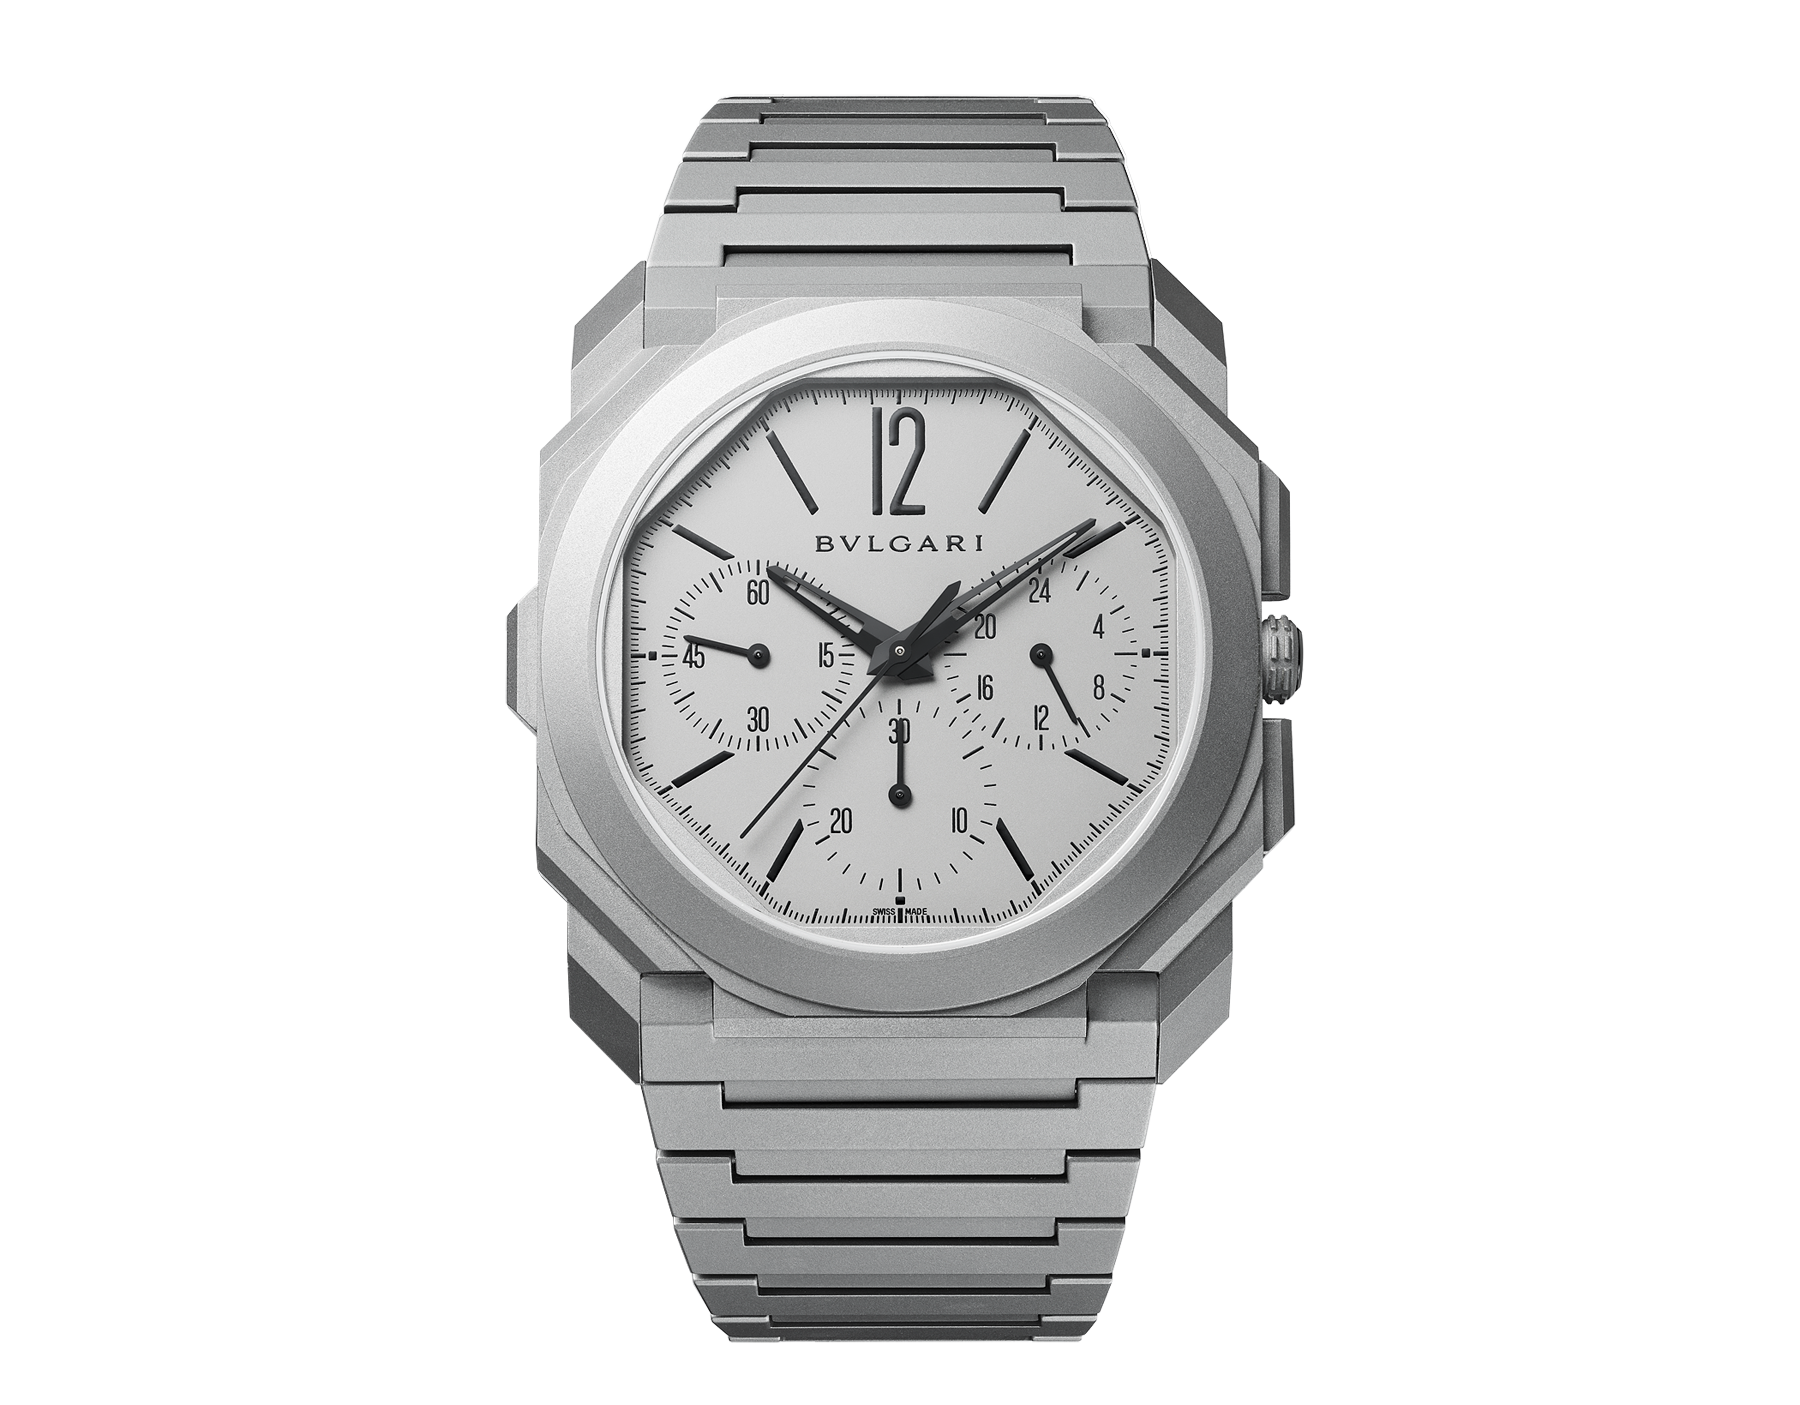 The Bulgari Octo Finissimo GMT Automatic, Chronograph Watches, Grey Design, Three Subdials, Swiss Watch